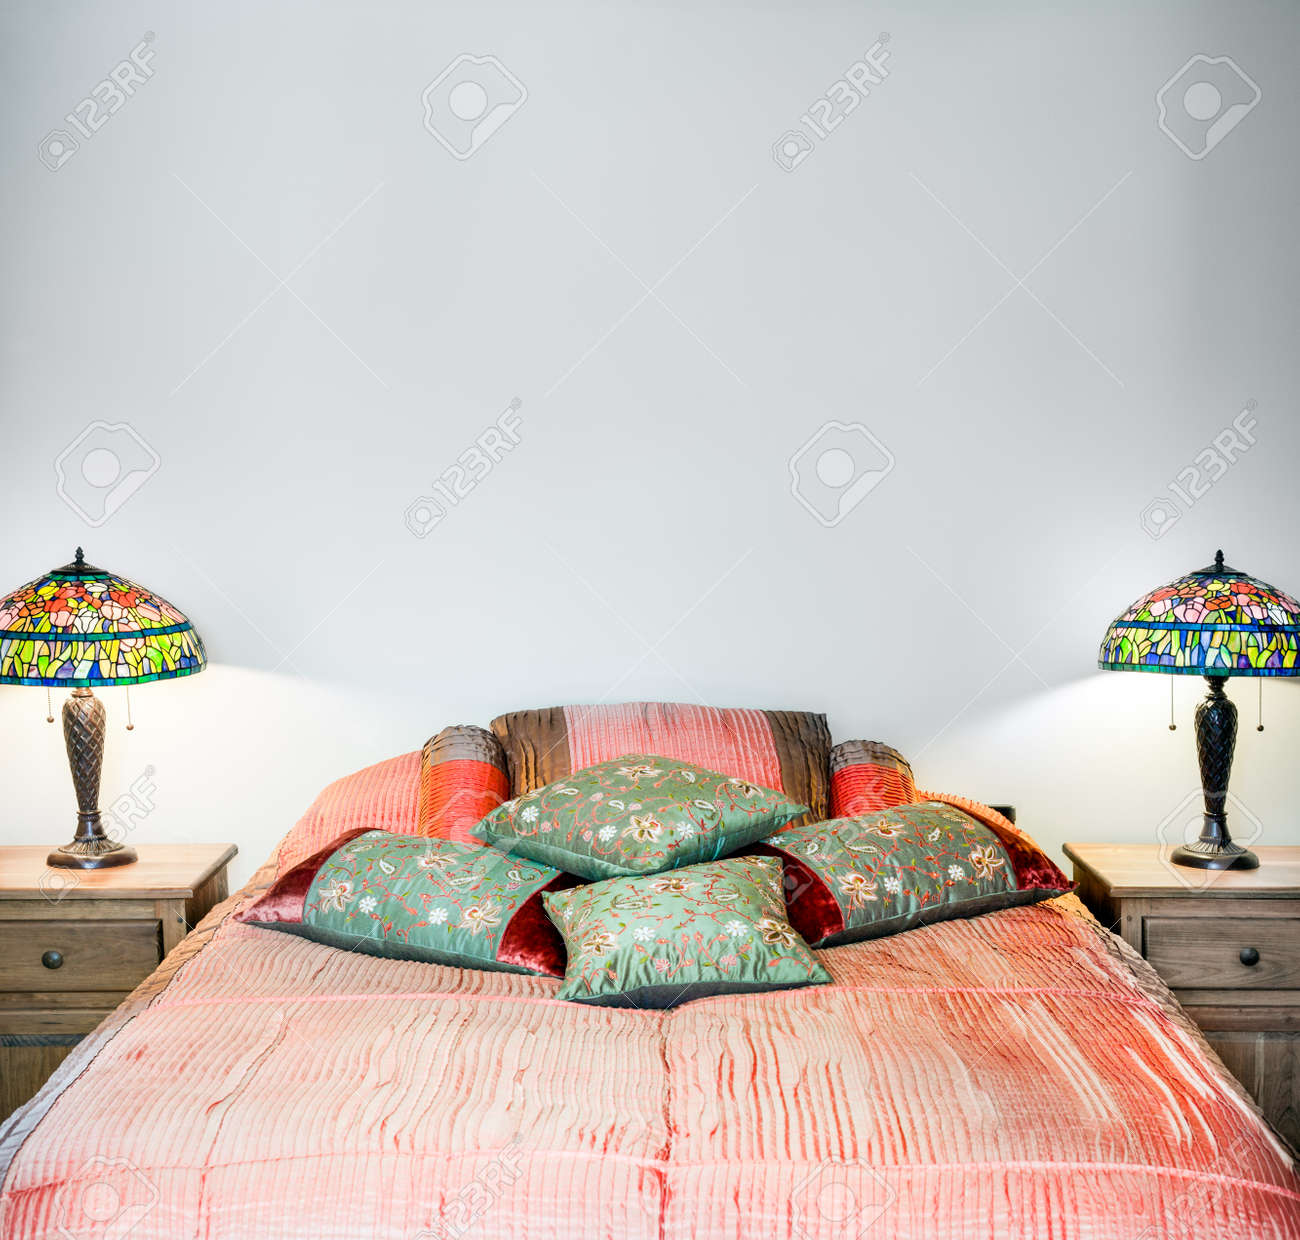 Beautiful Bedroom Interior Detail With Blank Wall For Your Text Stock Photo Picture And Royalty Free Image Image 26492311